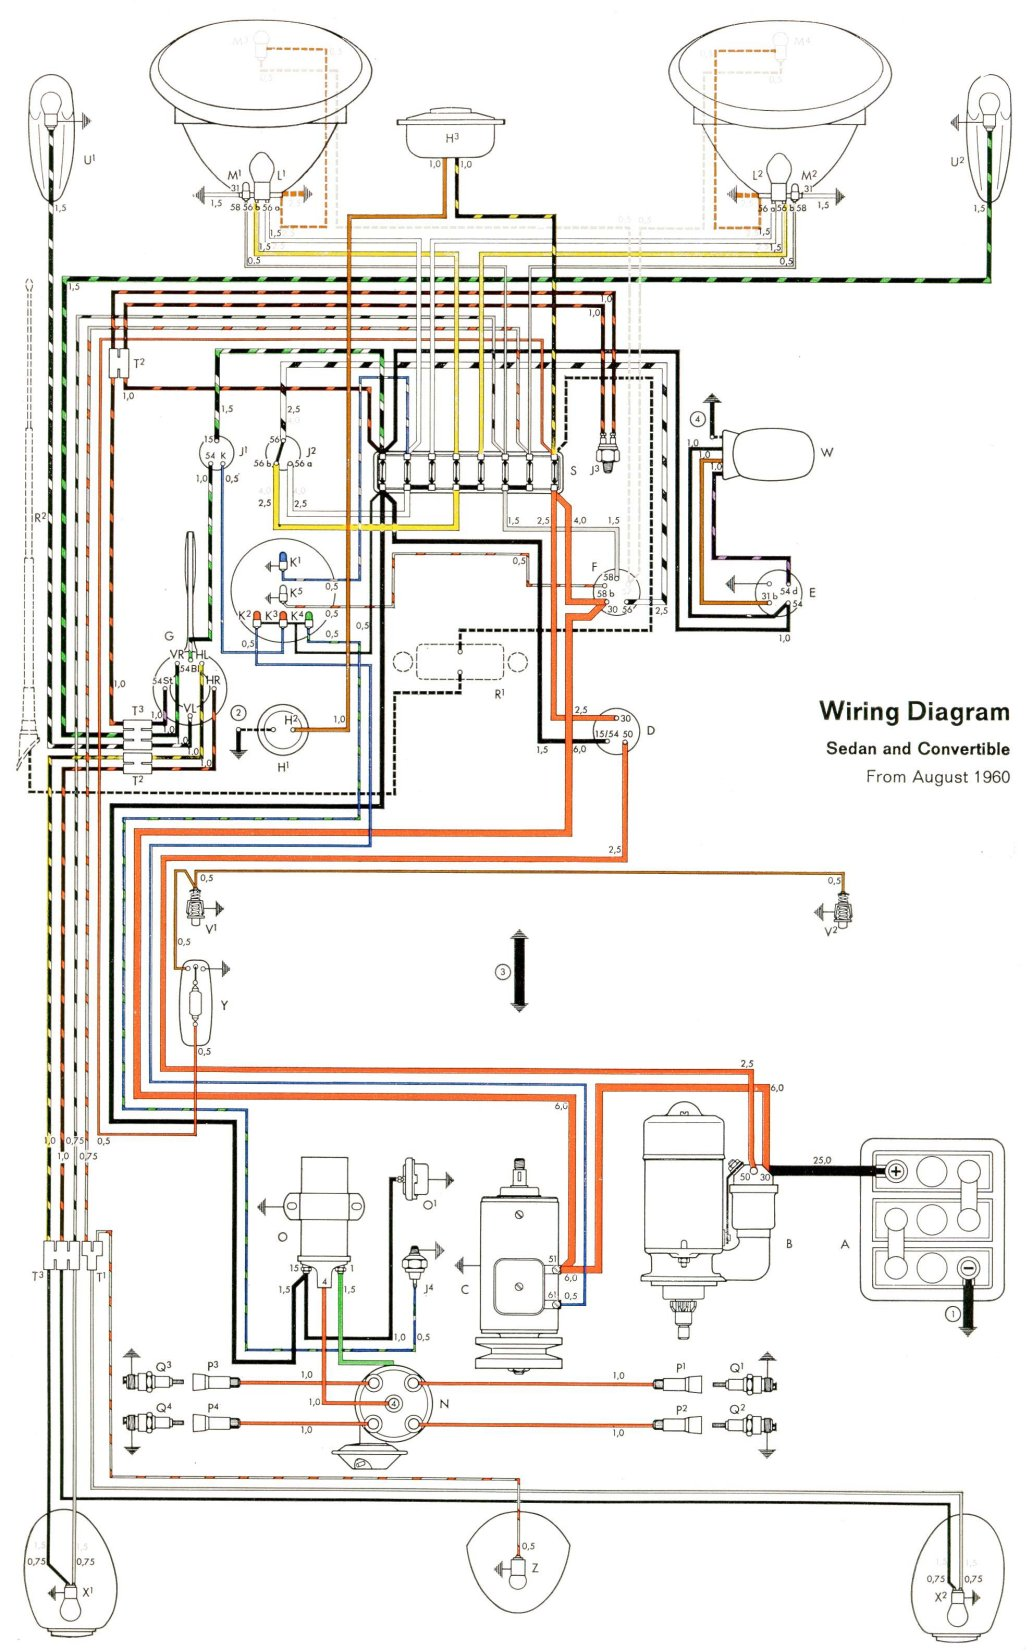 hight resolution of 1949 vw wiring diagram wiring diagram third level1949 vw wiring diagram wiring diagram todays ammeter gauge